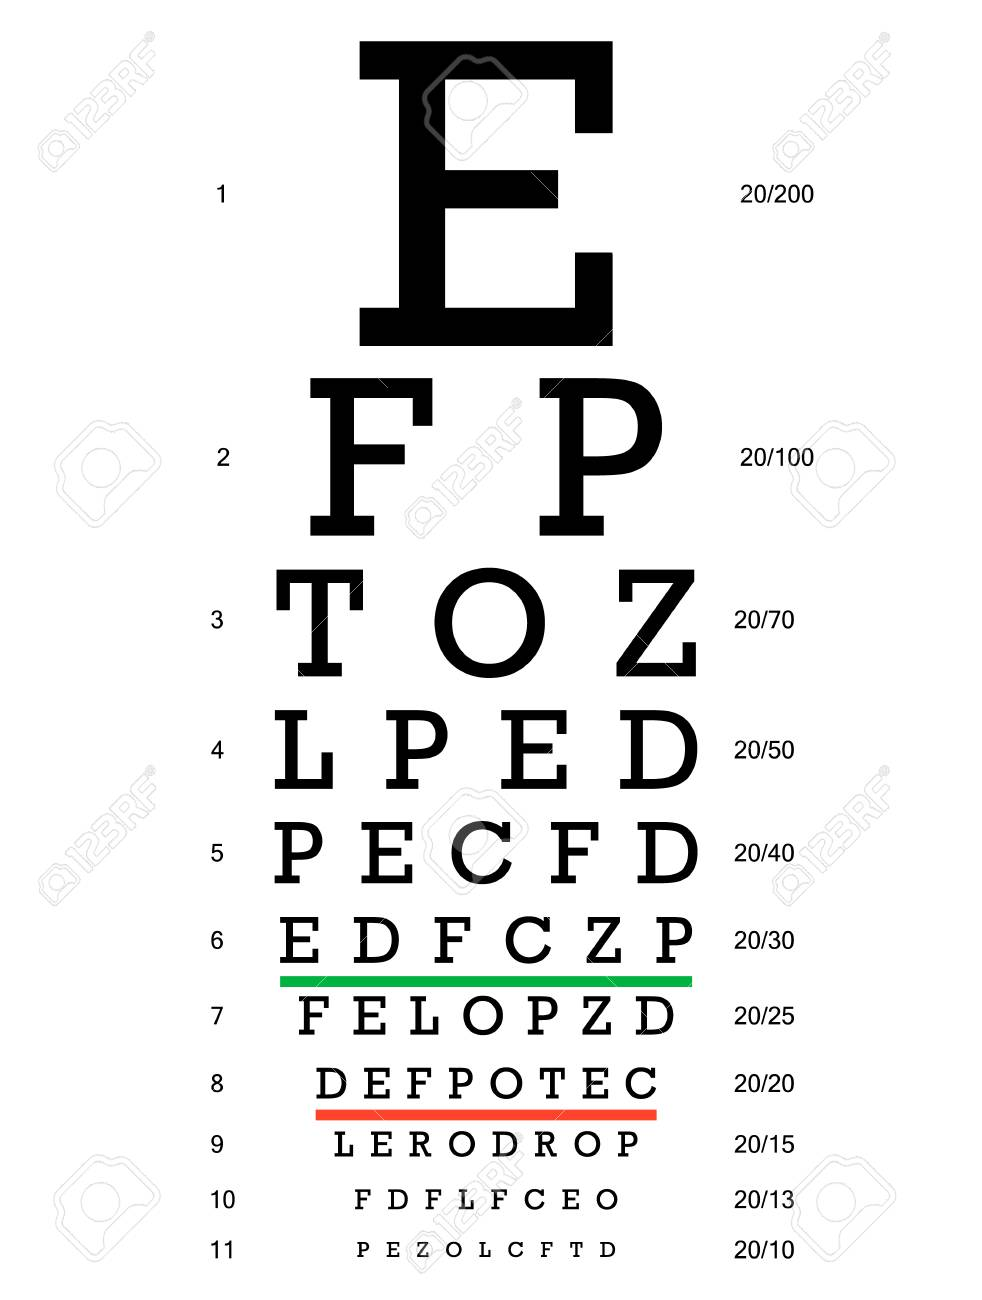 Layered Vector Illustration Of Three Kinds Of Eye Chart - 115847697